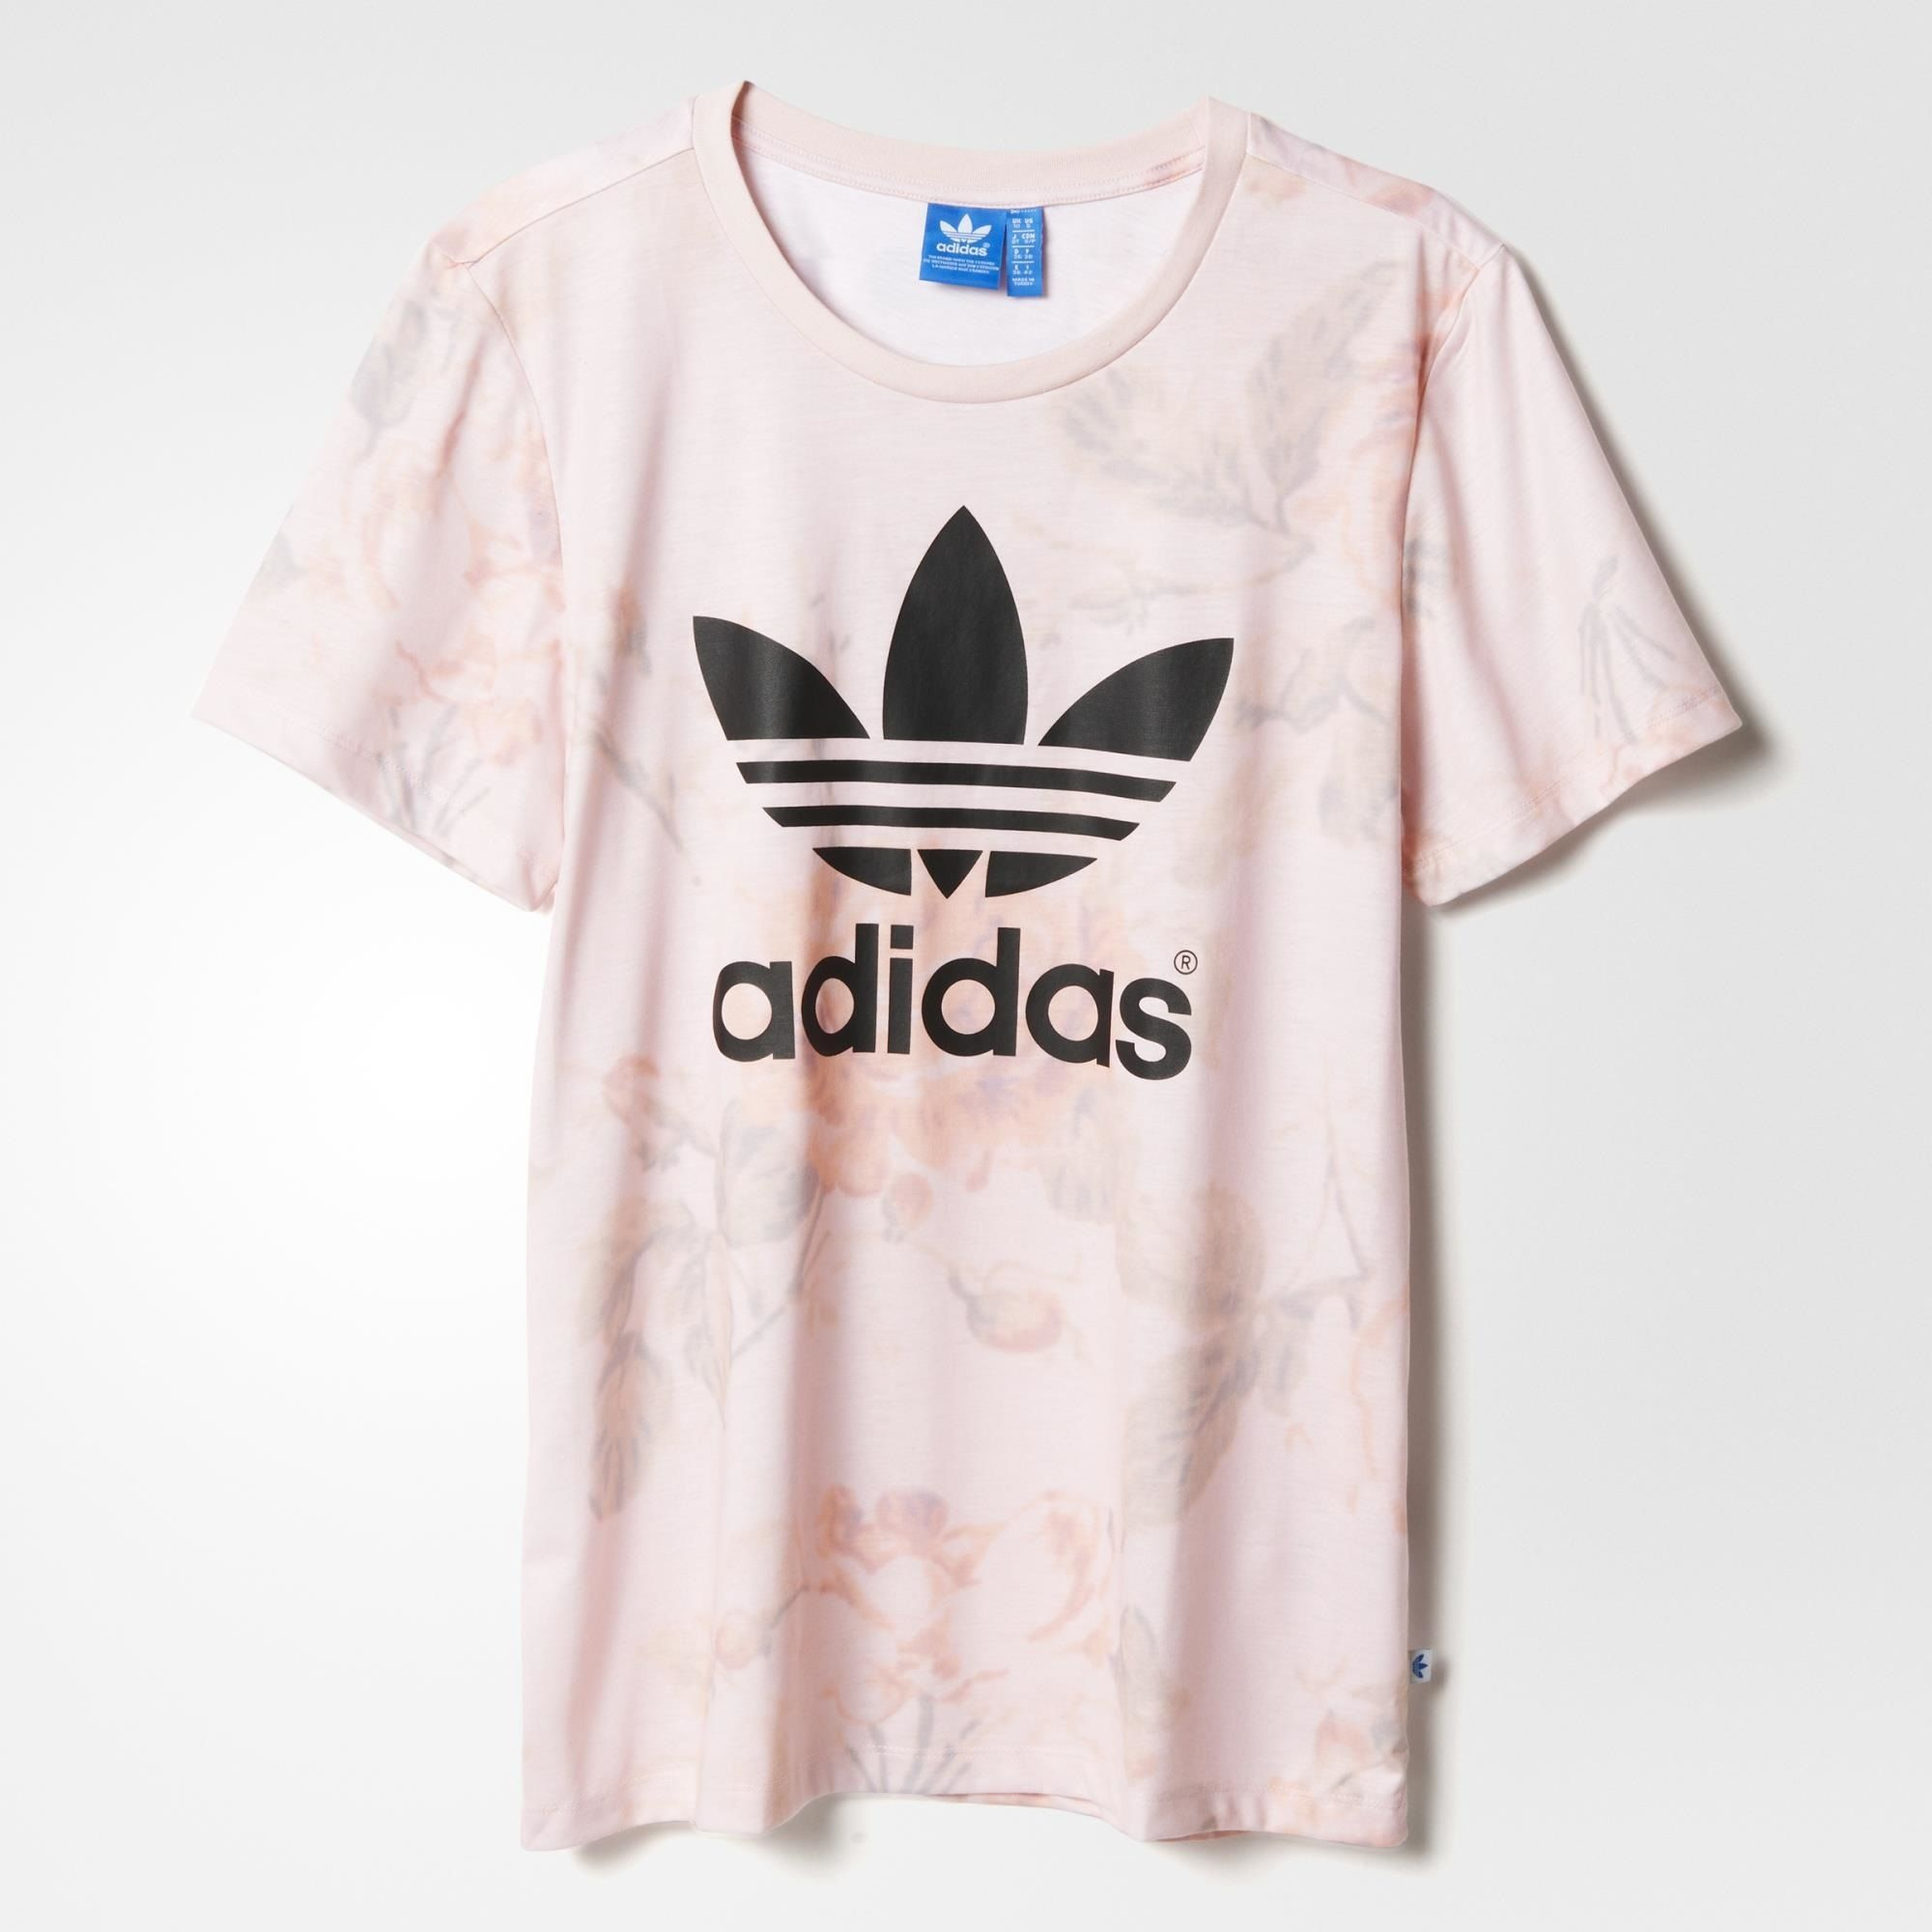 adidas bra pastel rose medium heather grey